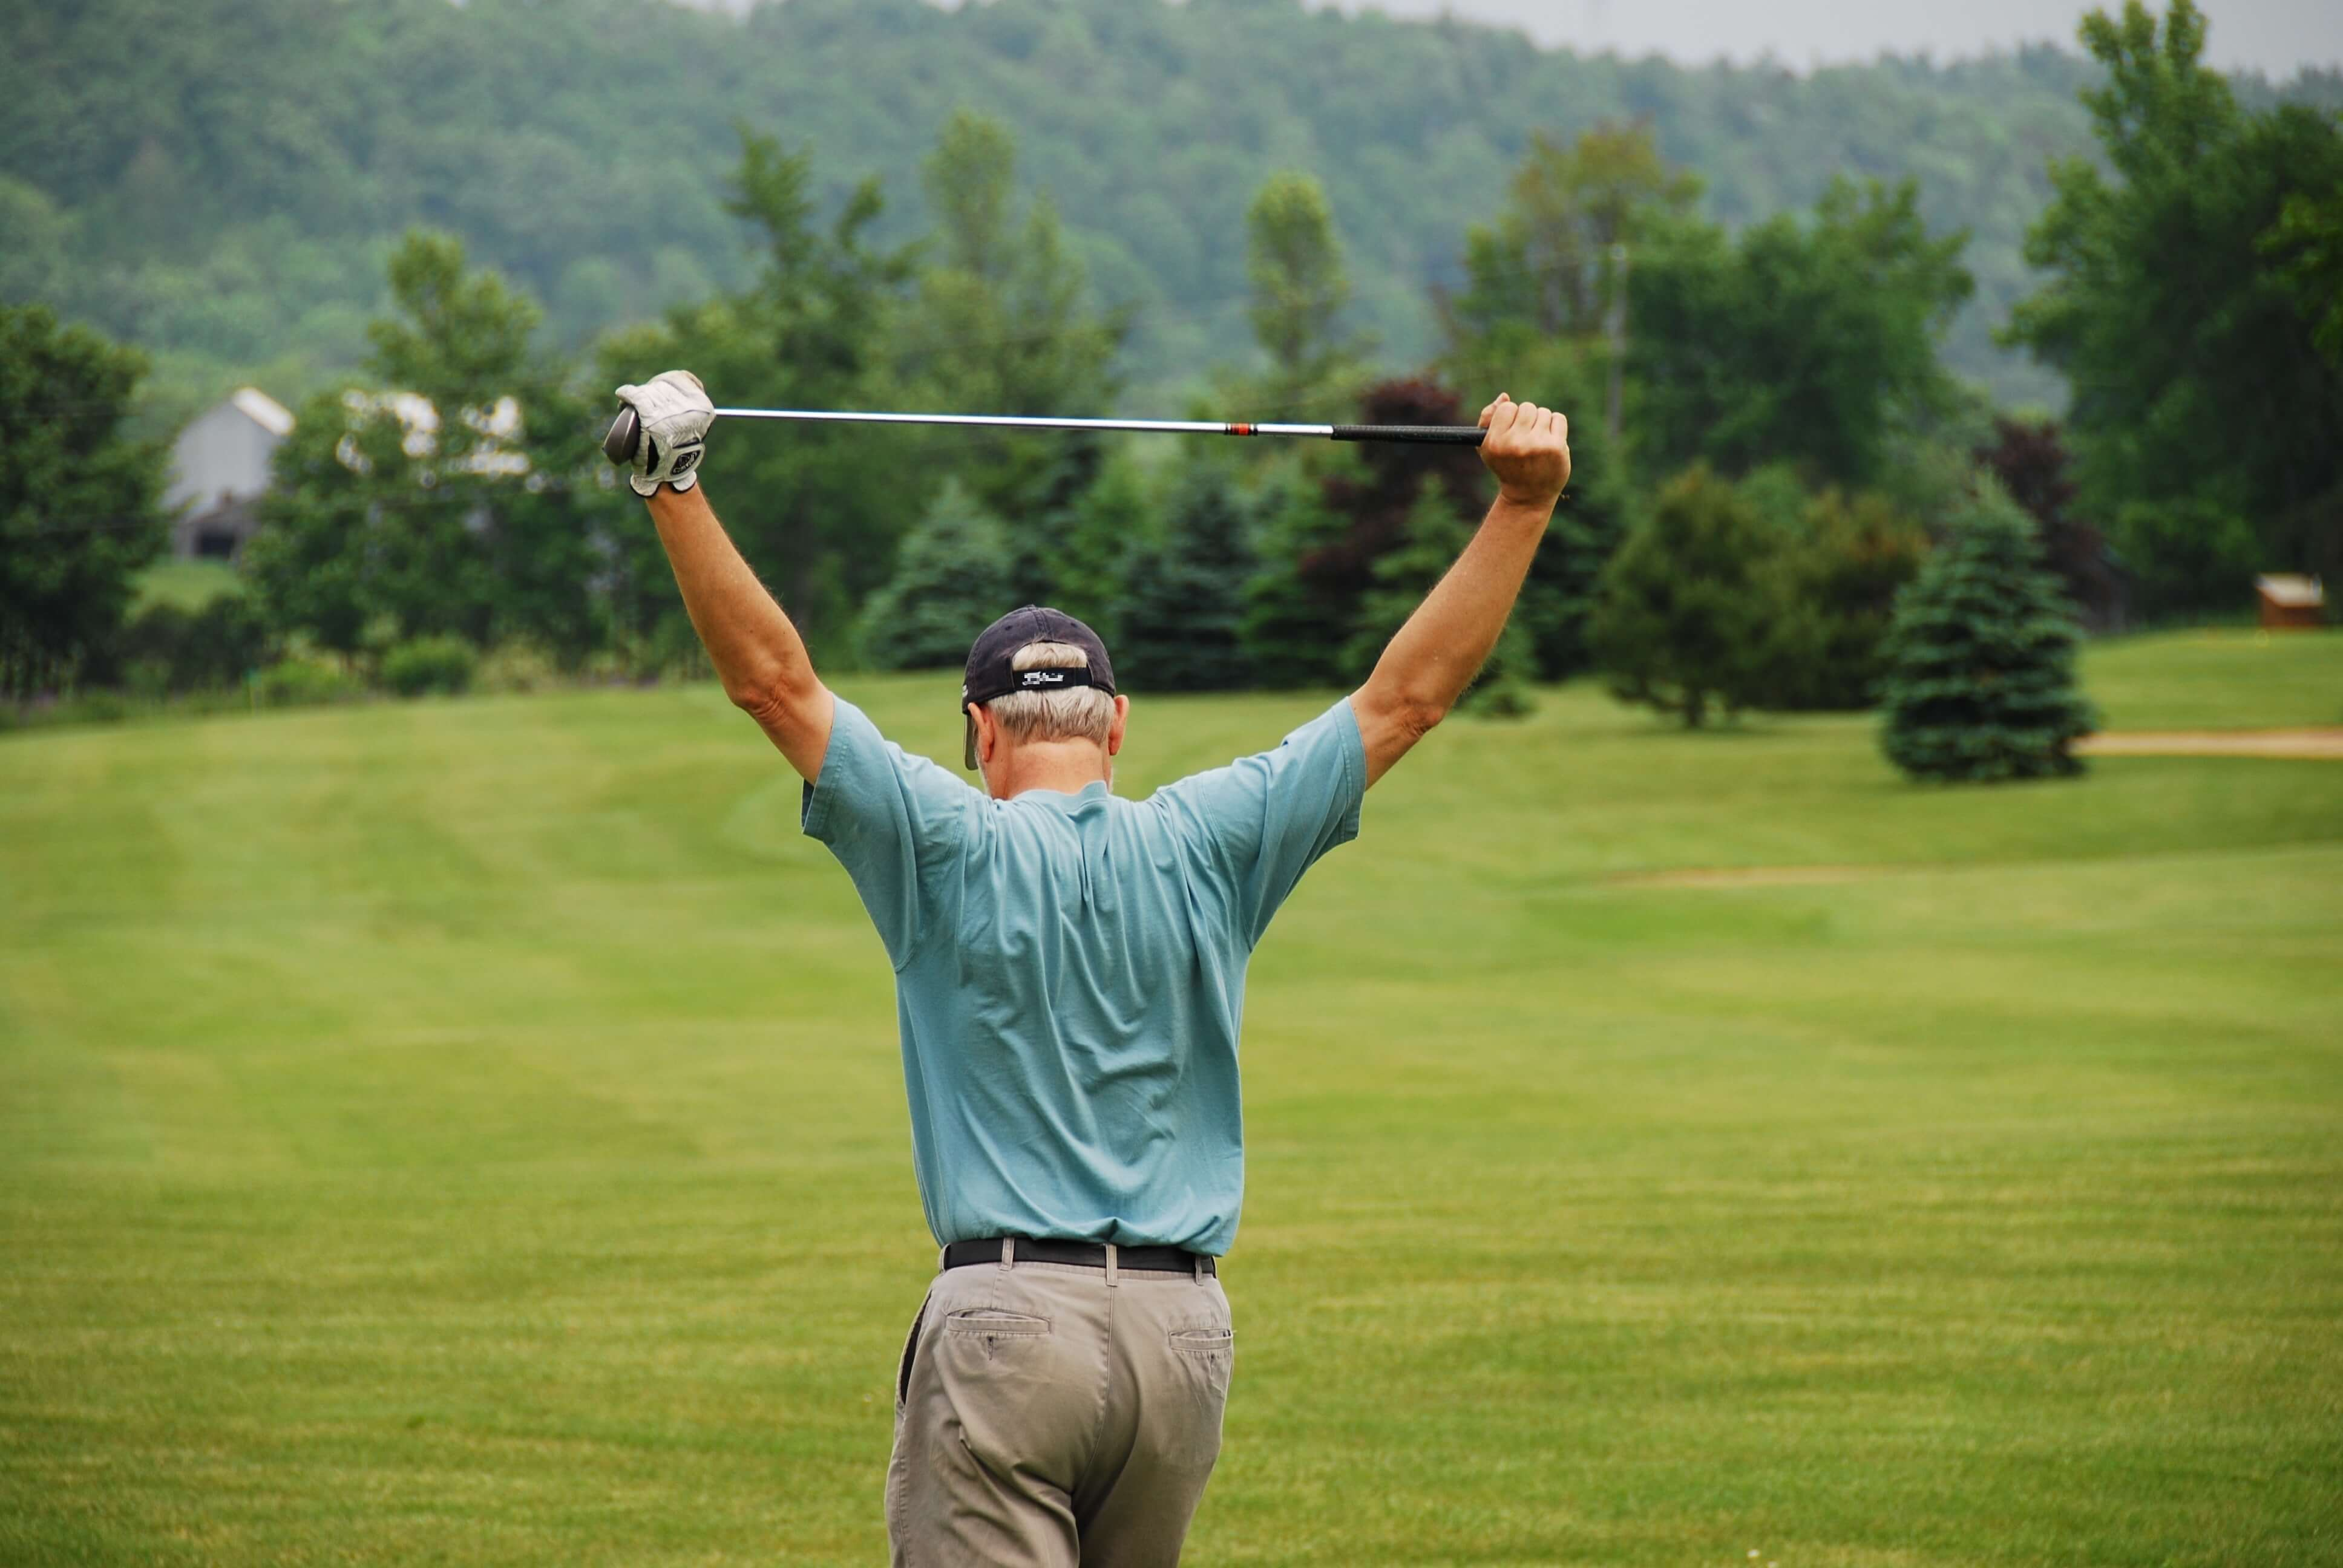 confident golfer stretching out